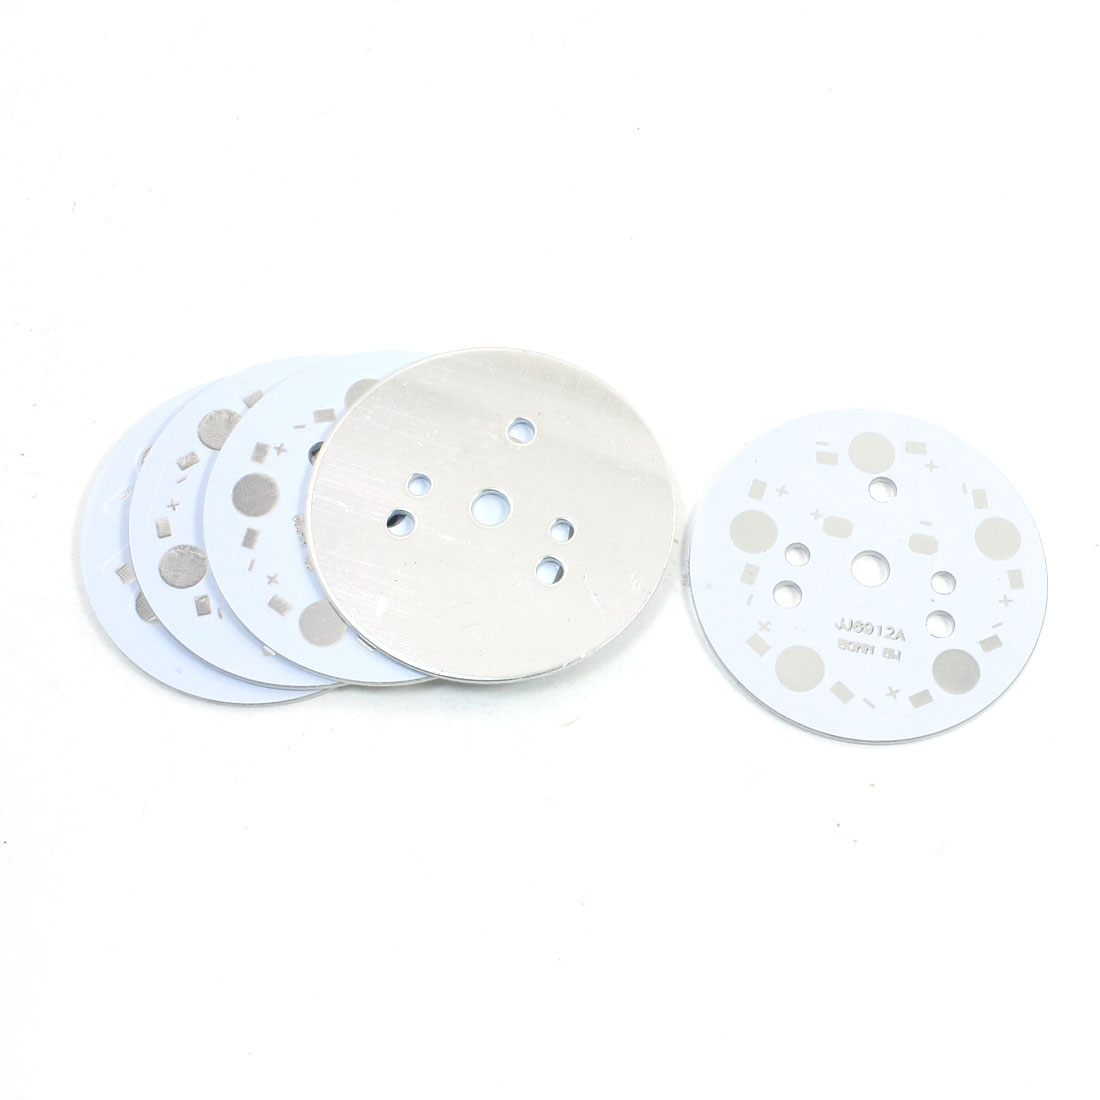 5Pcs Aluminum PCB Printed Circuit Board 49mm for 5 x 1W/3W/5W LEDs Series